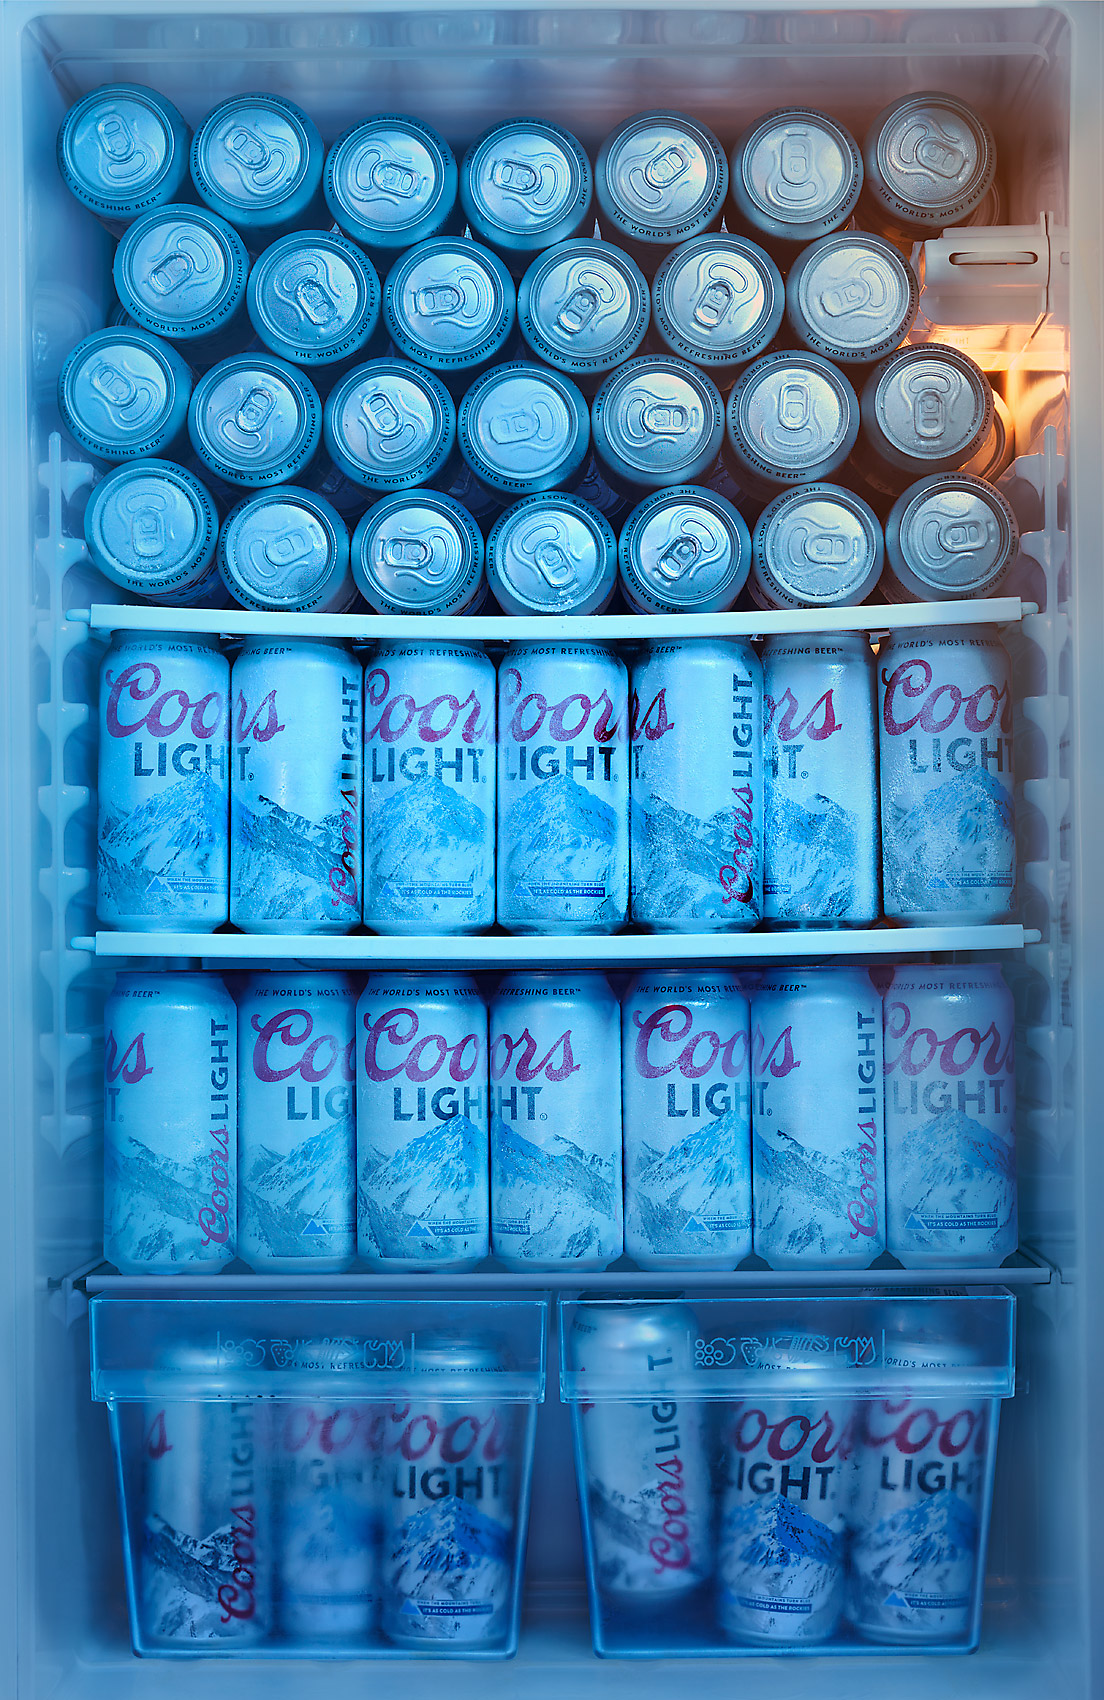 Nick_Rees-COORS_LIGHT-FRIDGE